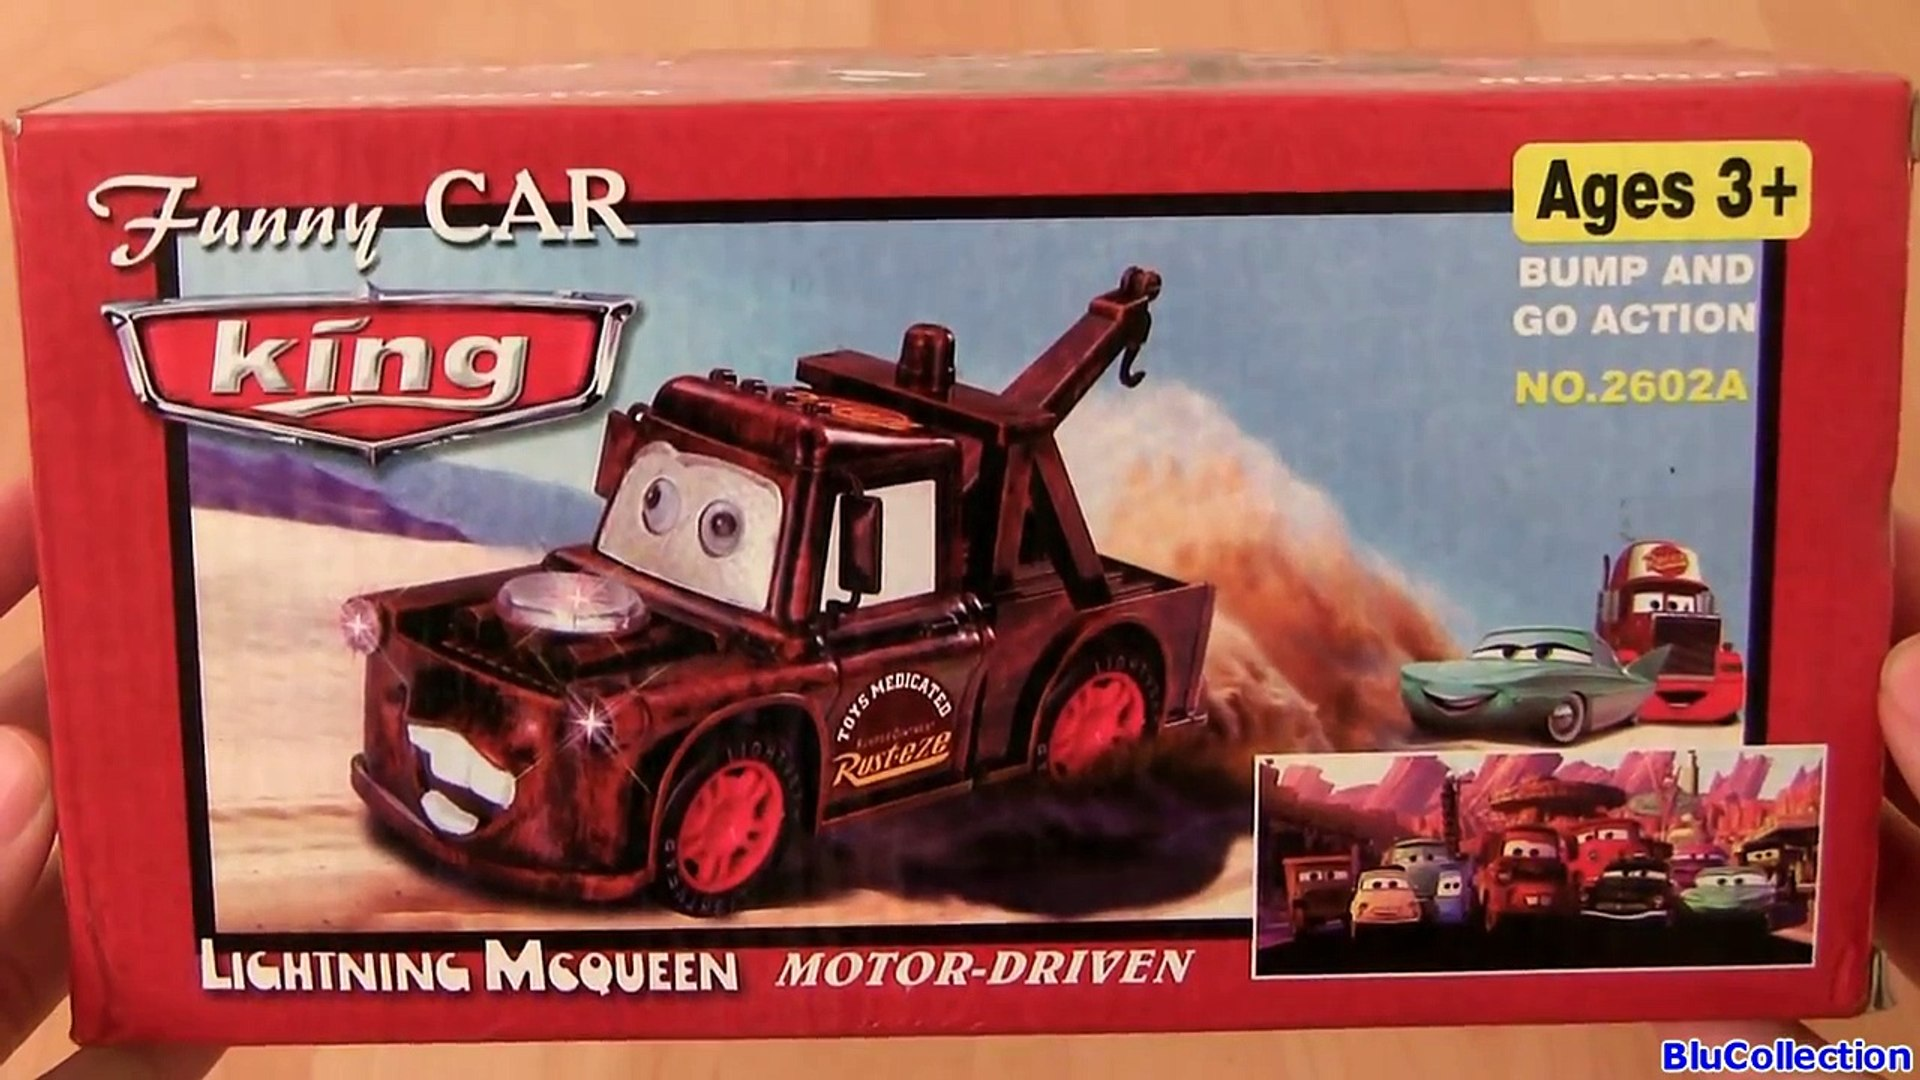 Fail Fake Cars 2 Funny Car King Mater Fail Knock Off Toys Disney Pixar From China 反斗車王2 Video Dailymotion